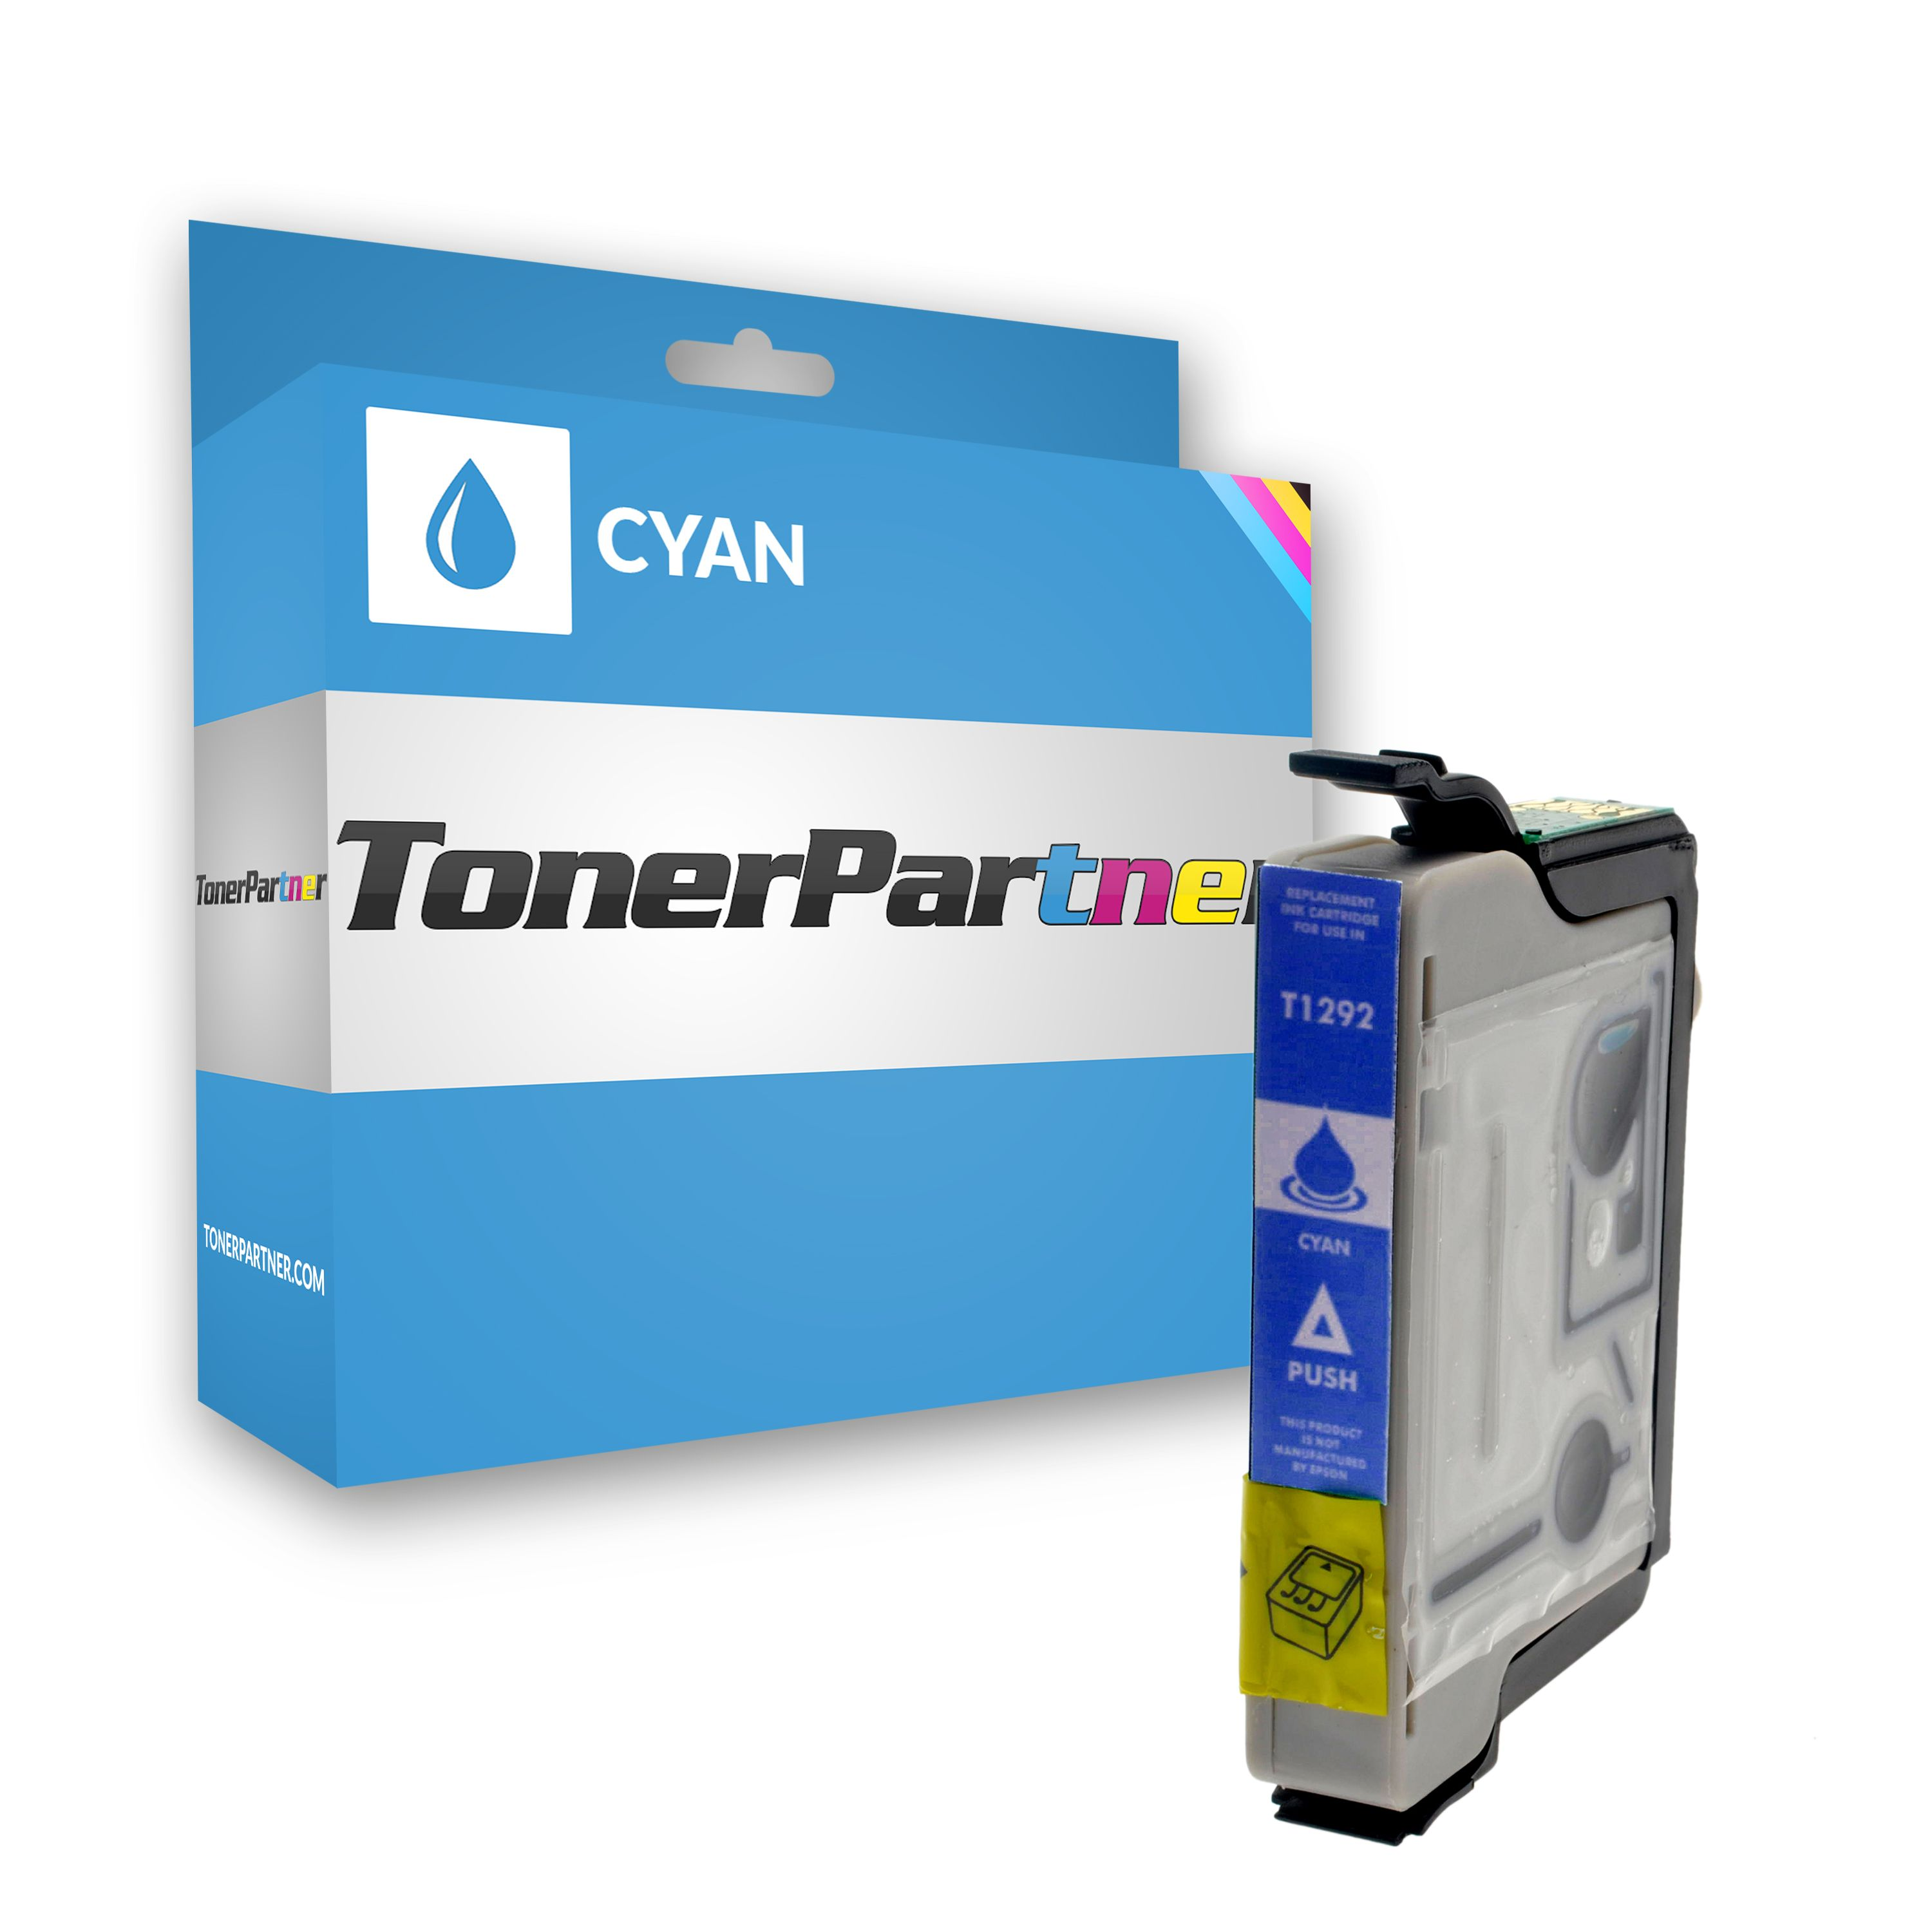 Compatible to Epson C13T12924010 / T1292 Ink cartridge cyan